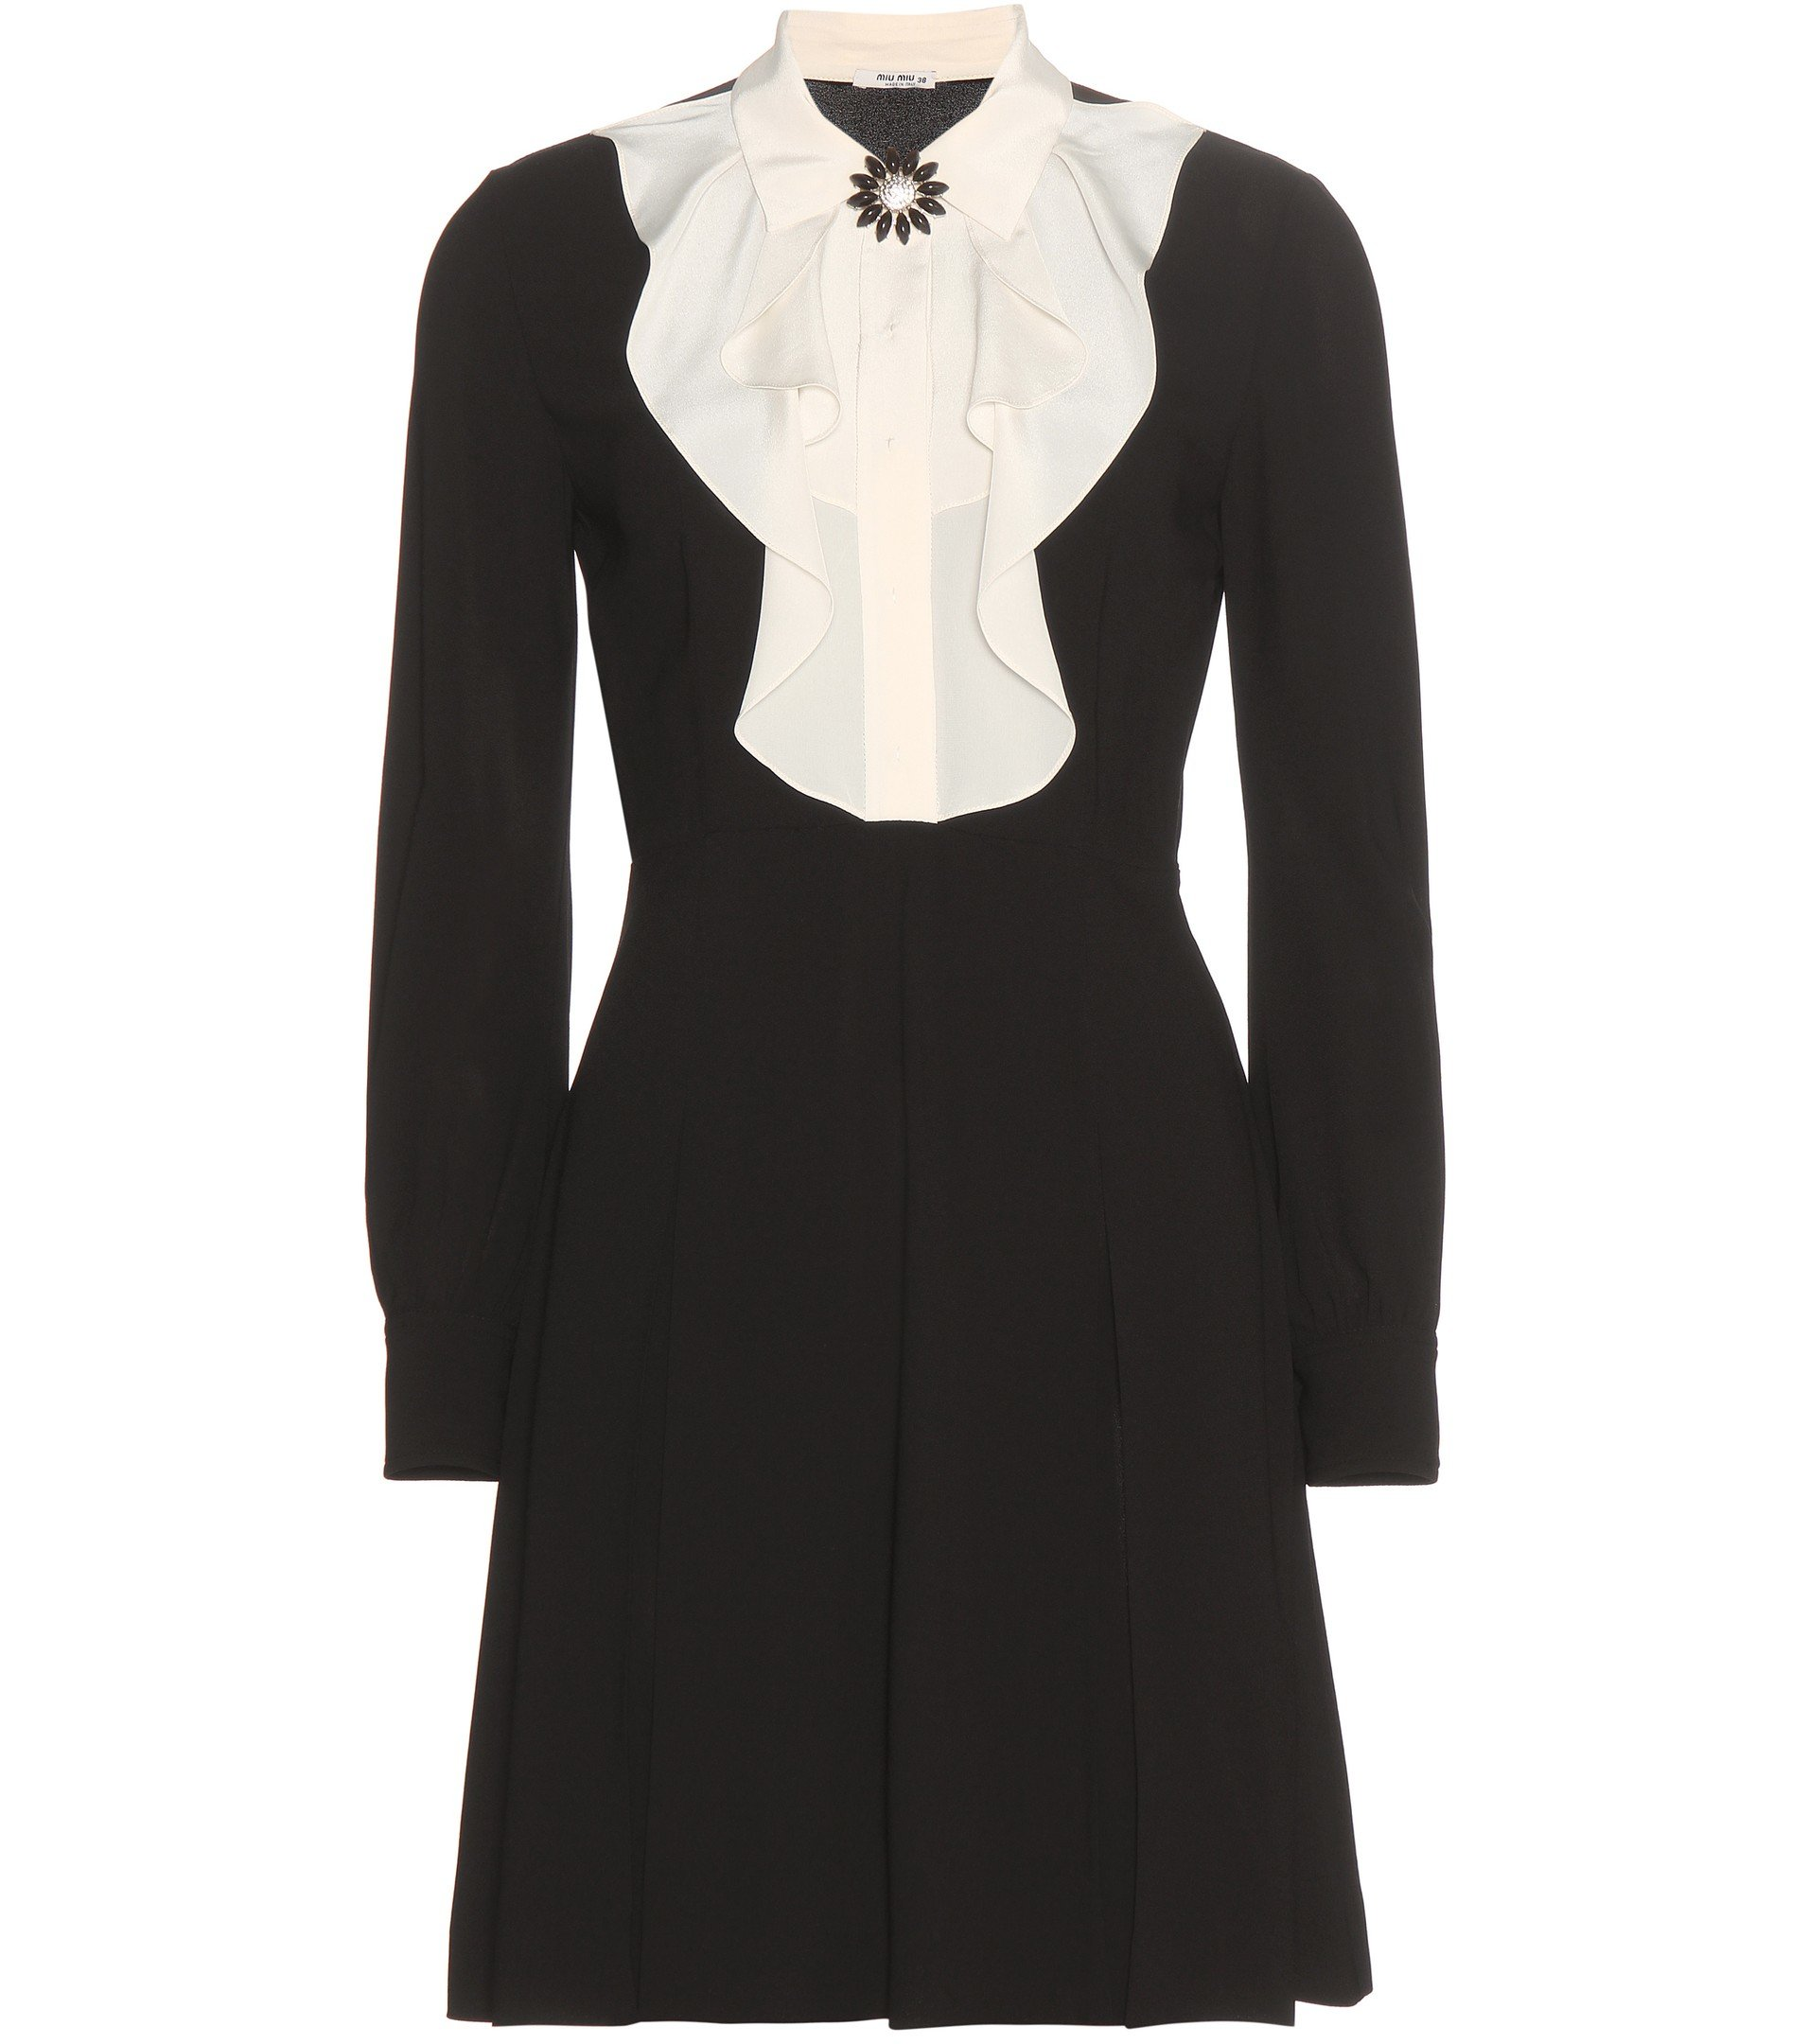 Miu Miu Beaded Silk Dress Cheap Best Store To Get Shopping Online Browse Outlet Fake Buy Cheap Looking For qlW5rAM